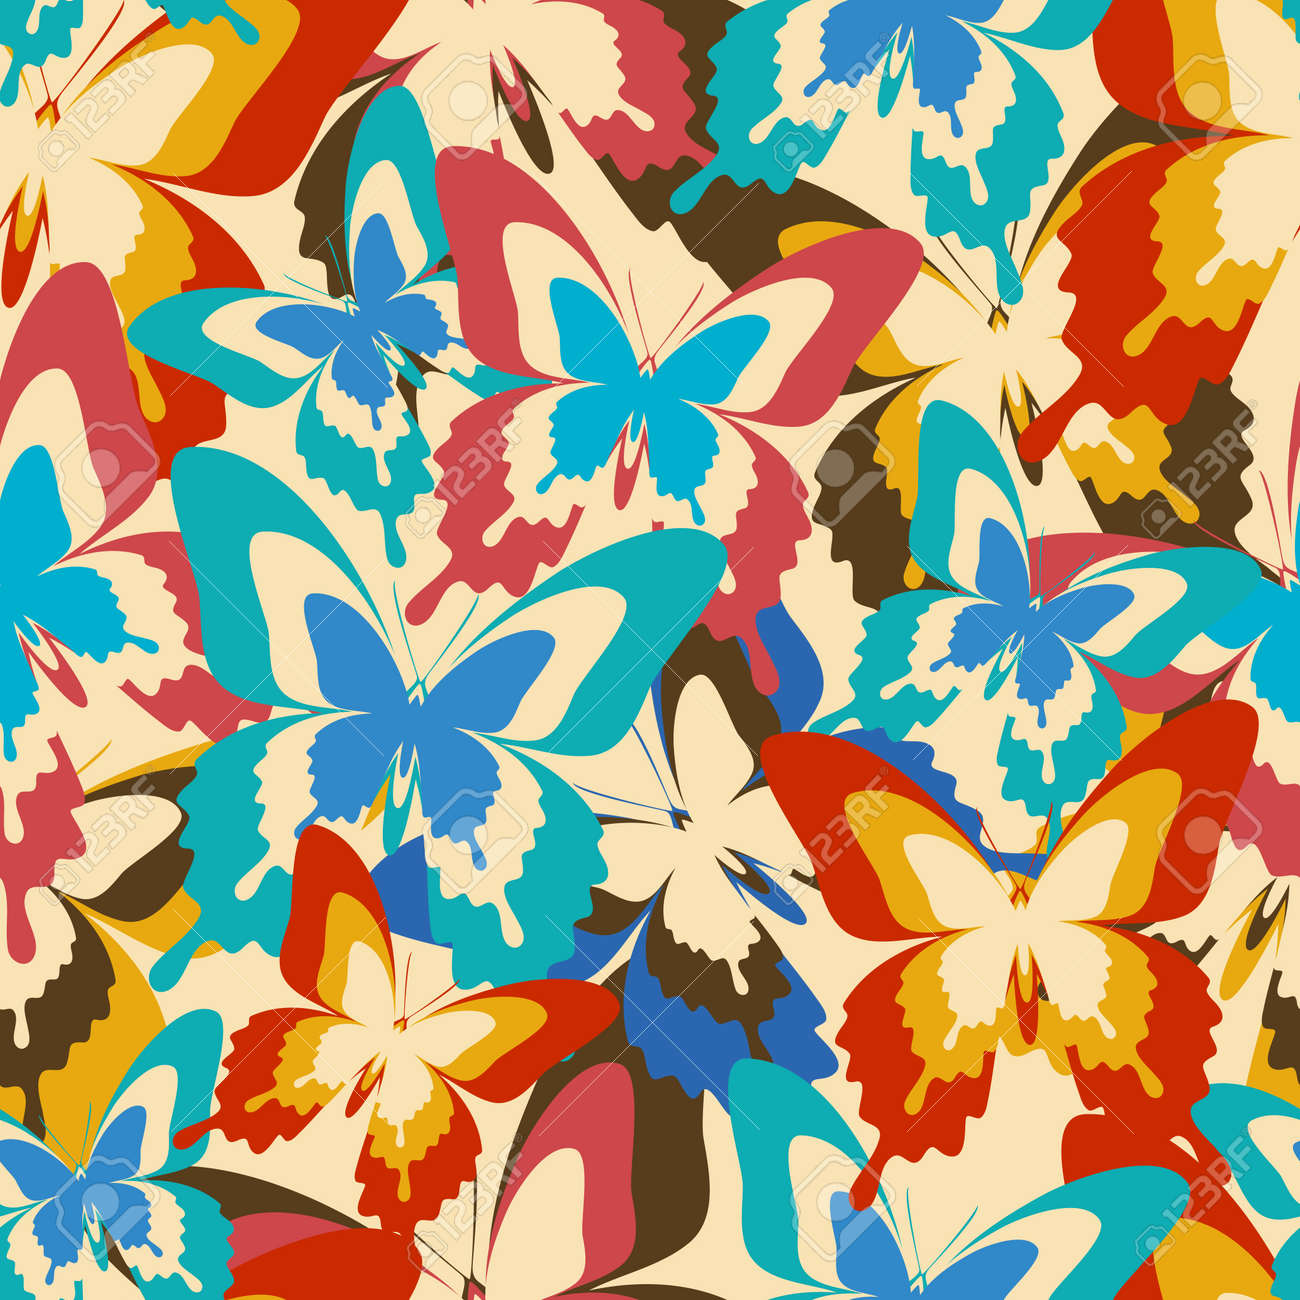 Beautiful Beautiful Background Seamless Pattern With Flying Colorful Butterflies In  Vintage Or Retro Style. Bright Stylish Design